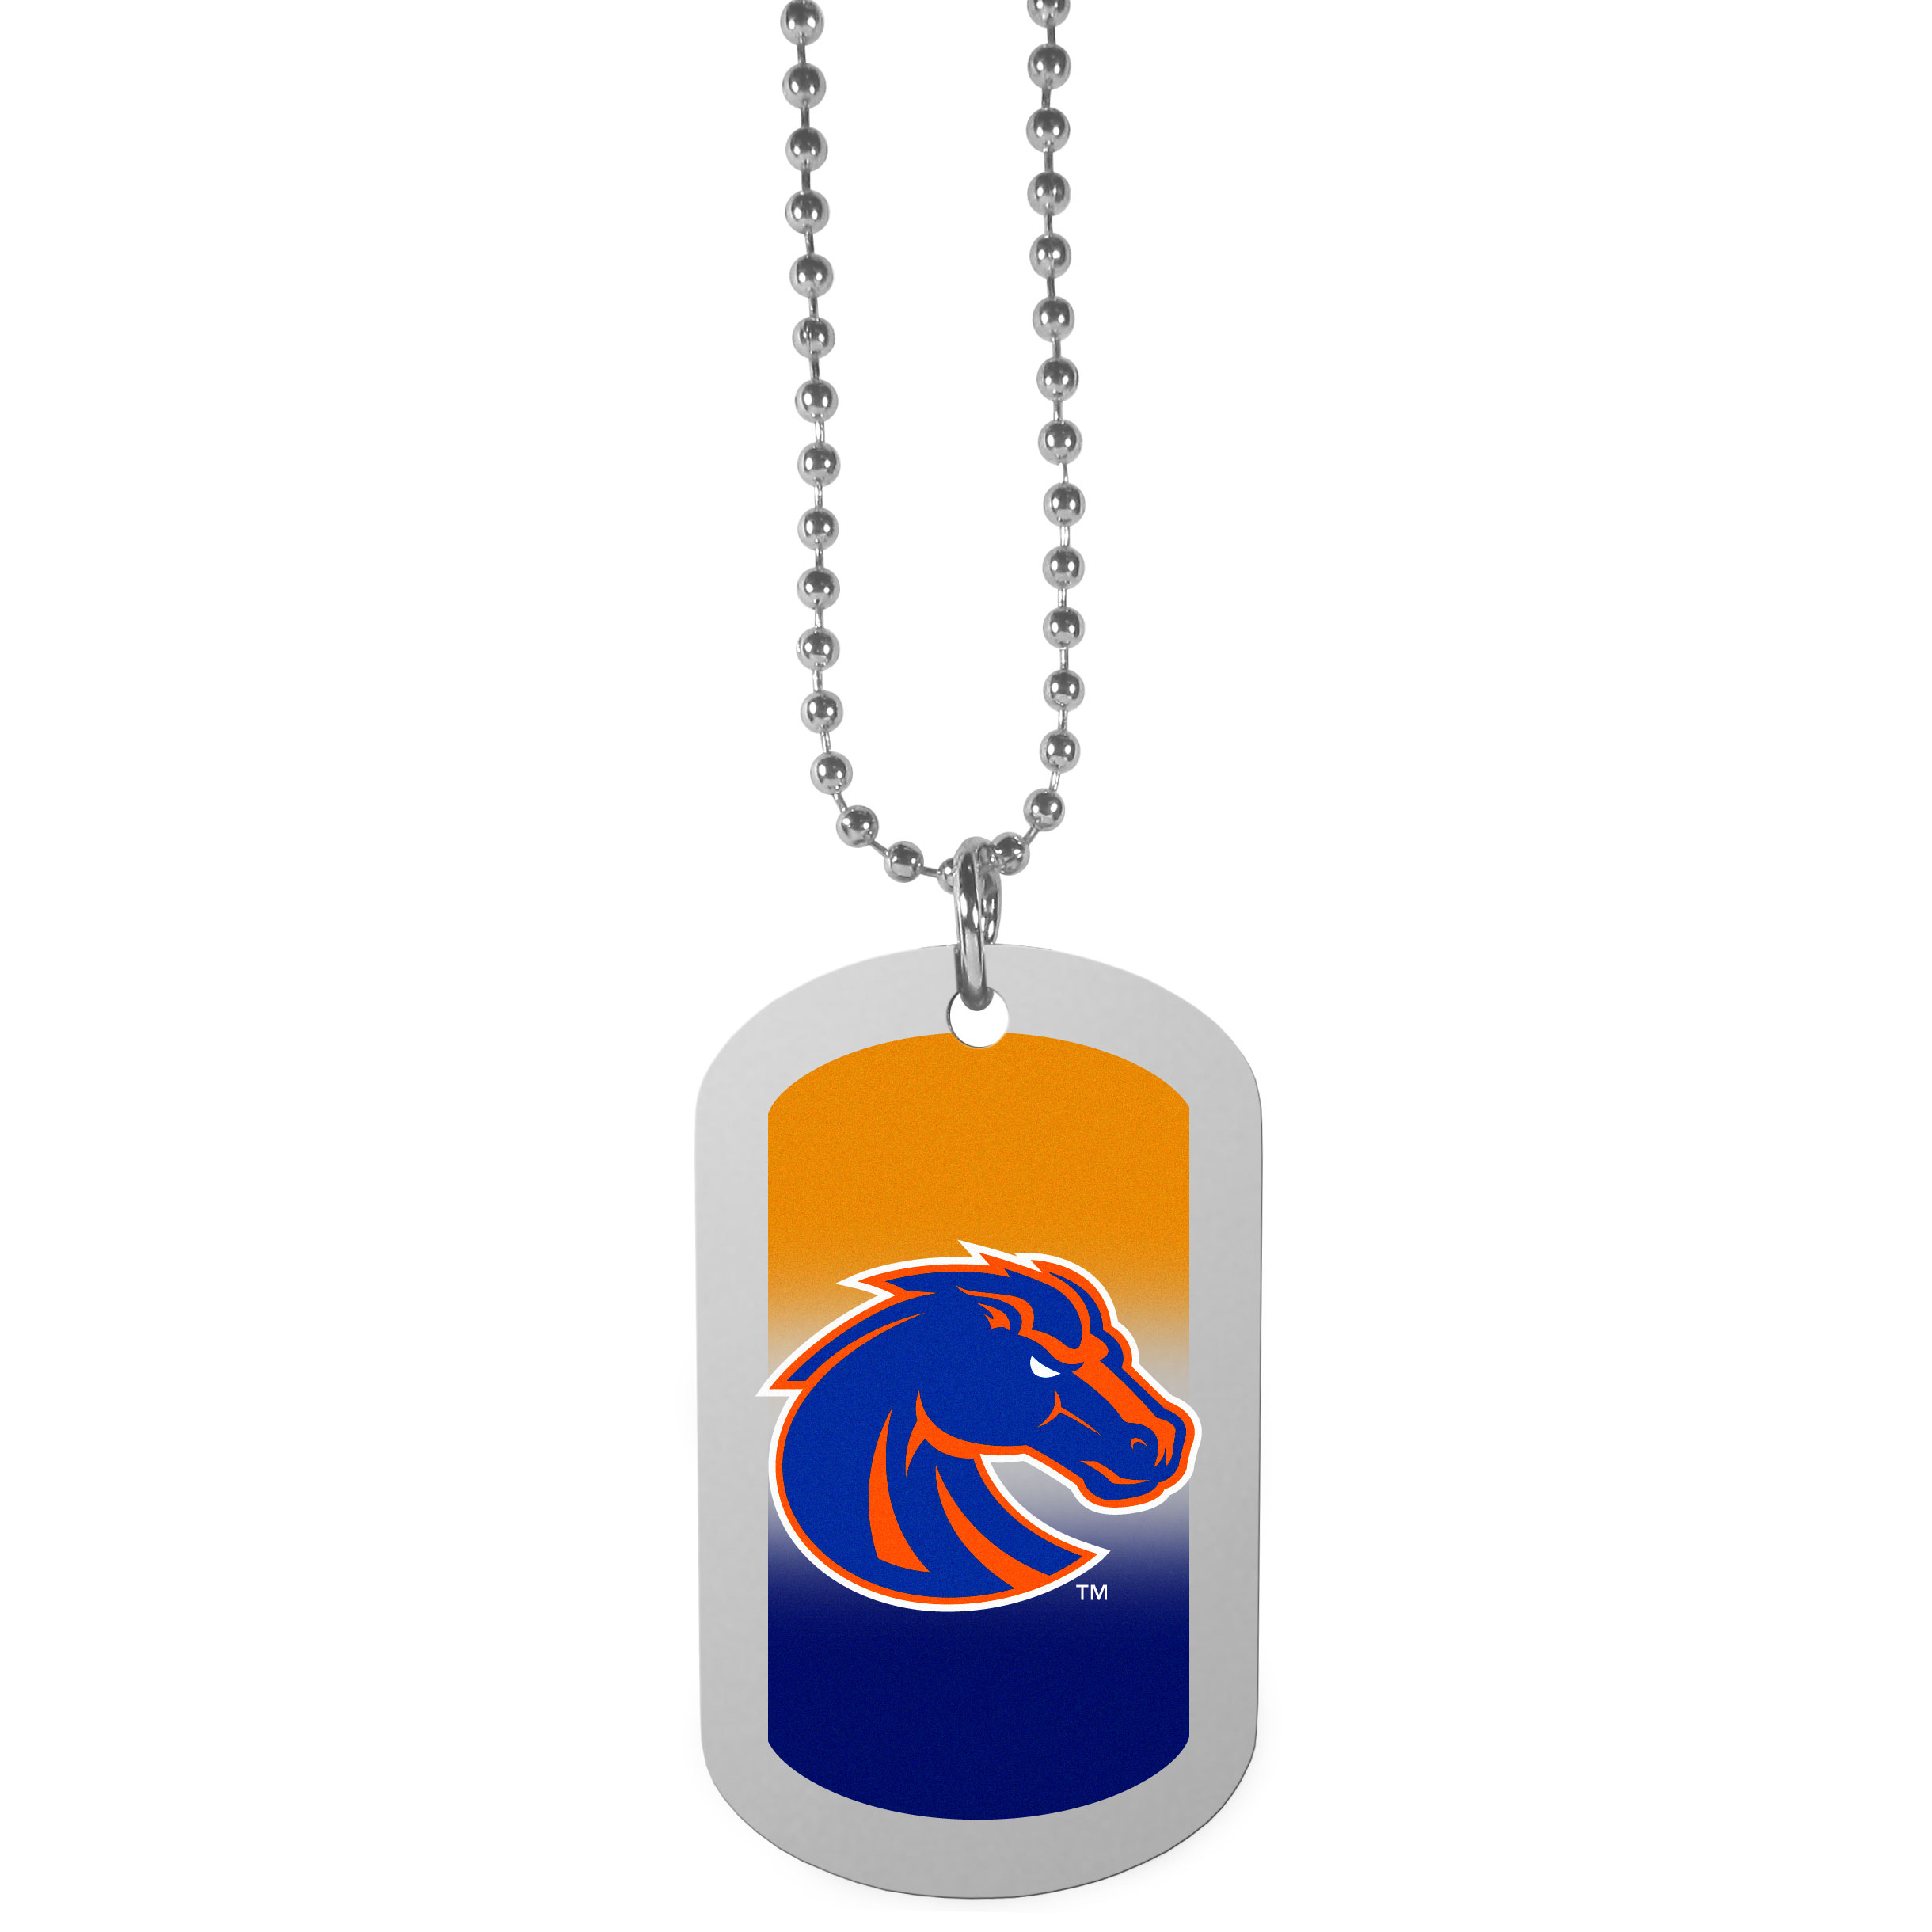 Boise St. Broncos Team Tag Necklace - Dog tag necklaces are a fashion statement that is here to stay. The sporty version of the classic tag features a gradient print in team colors featuring a full color team logo over a high polish tag to create a bold and sporty look. The tag comes on a 26 inch ball chain with a ball and joint clasp. Any Boise St. Broncos would be proud to wear this attractive fashion accessory.